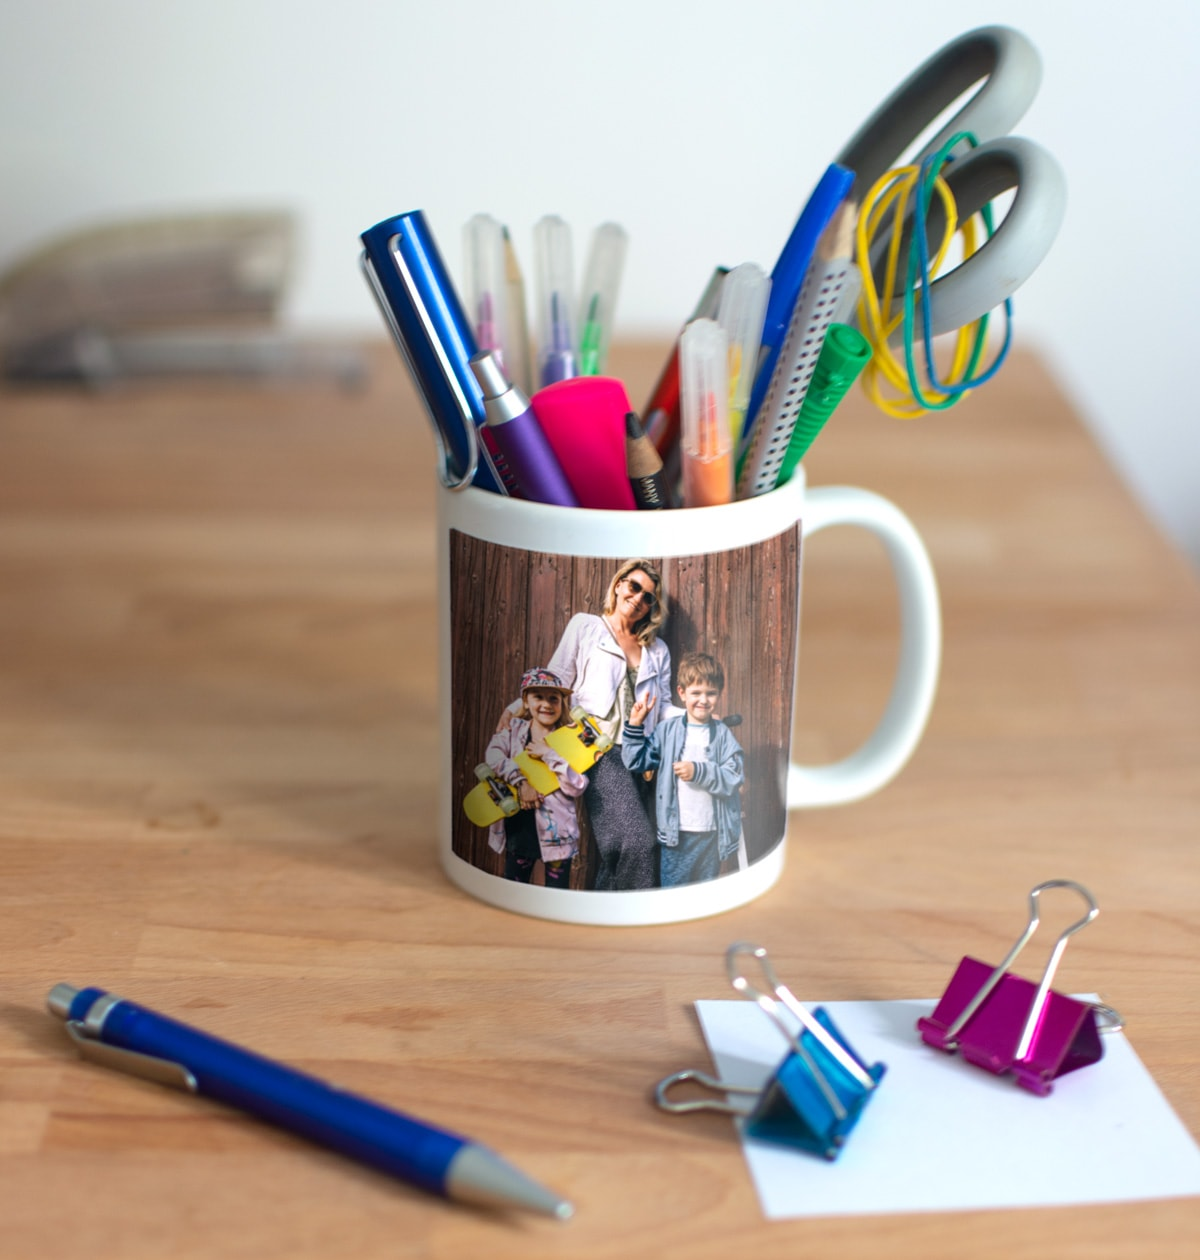 Two photo mugs used as make-up brush holders to tidy a dressing table